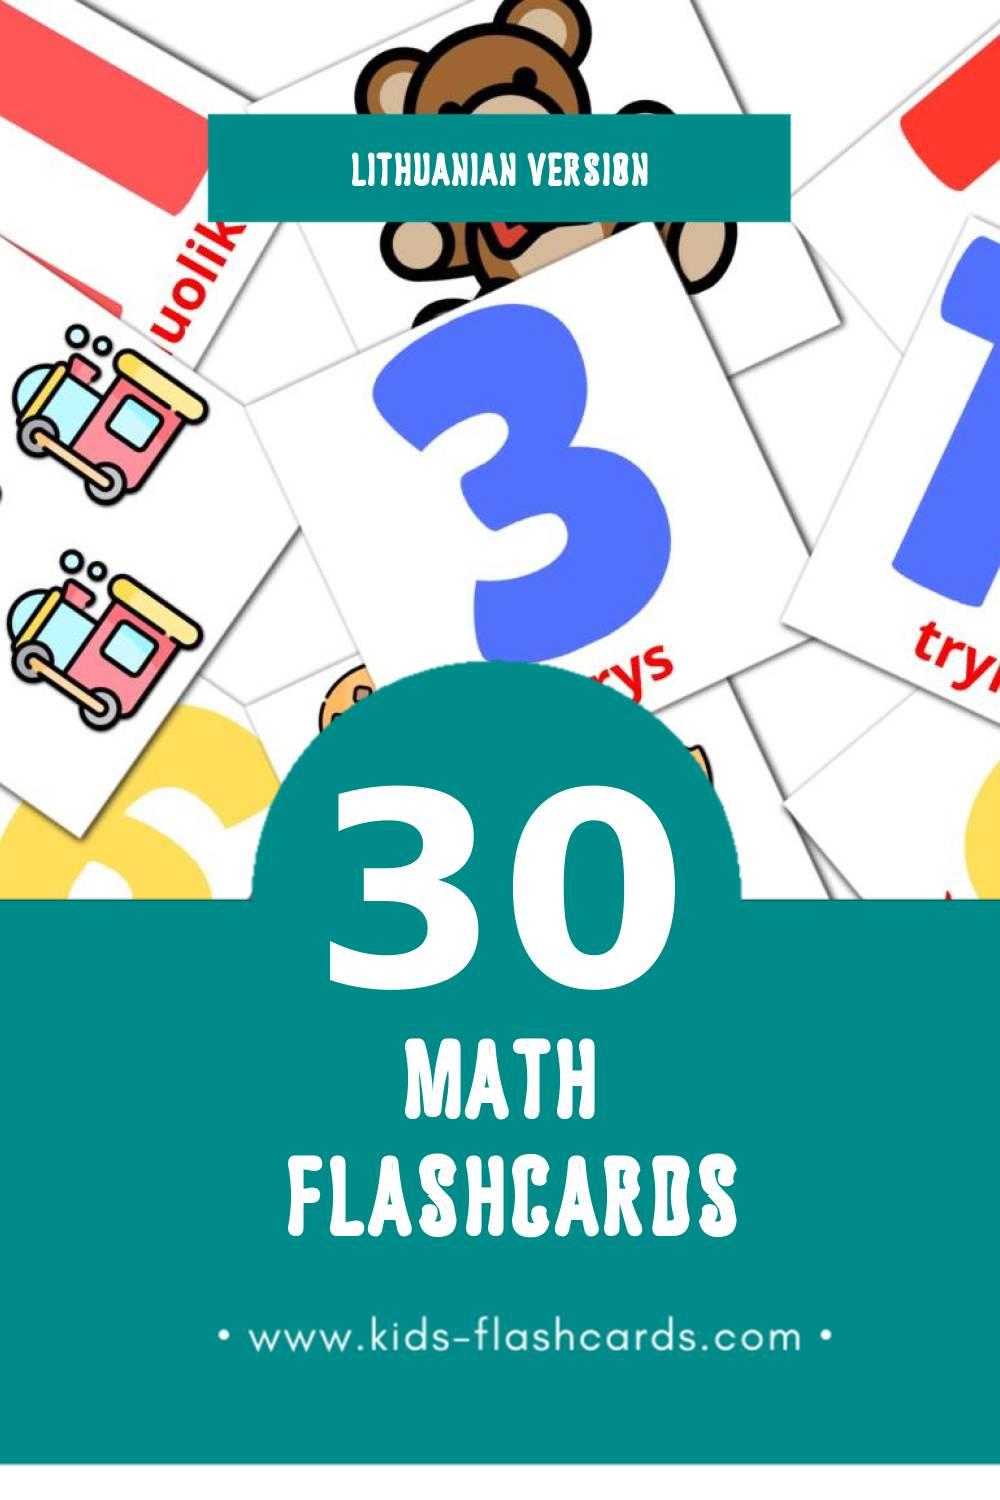 Visual Matematika  Flashcards for Toddlers (30 cards in Lithuanian)